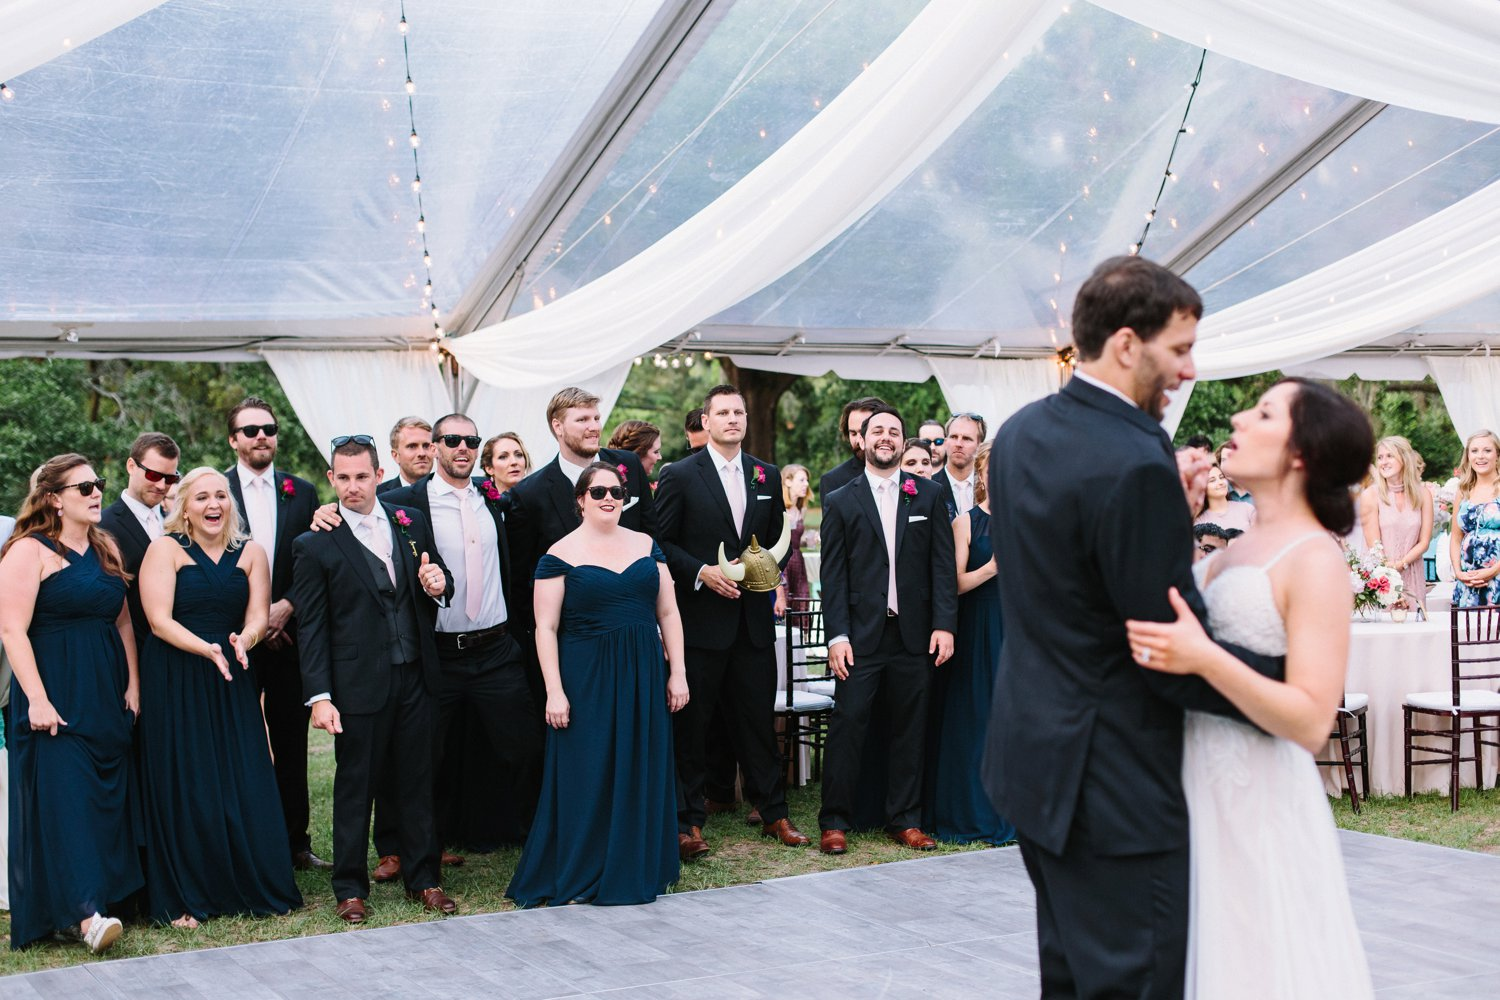 Lindsey_A_Miller_Photography_mcleod_plantation_wedding_charleston_south_carolina_clear_tent_spring_mod_events_069.jpg